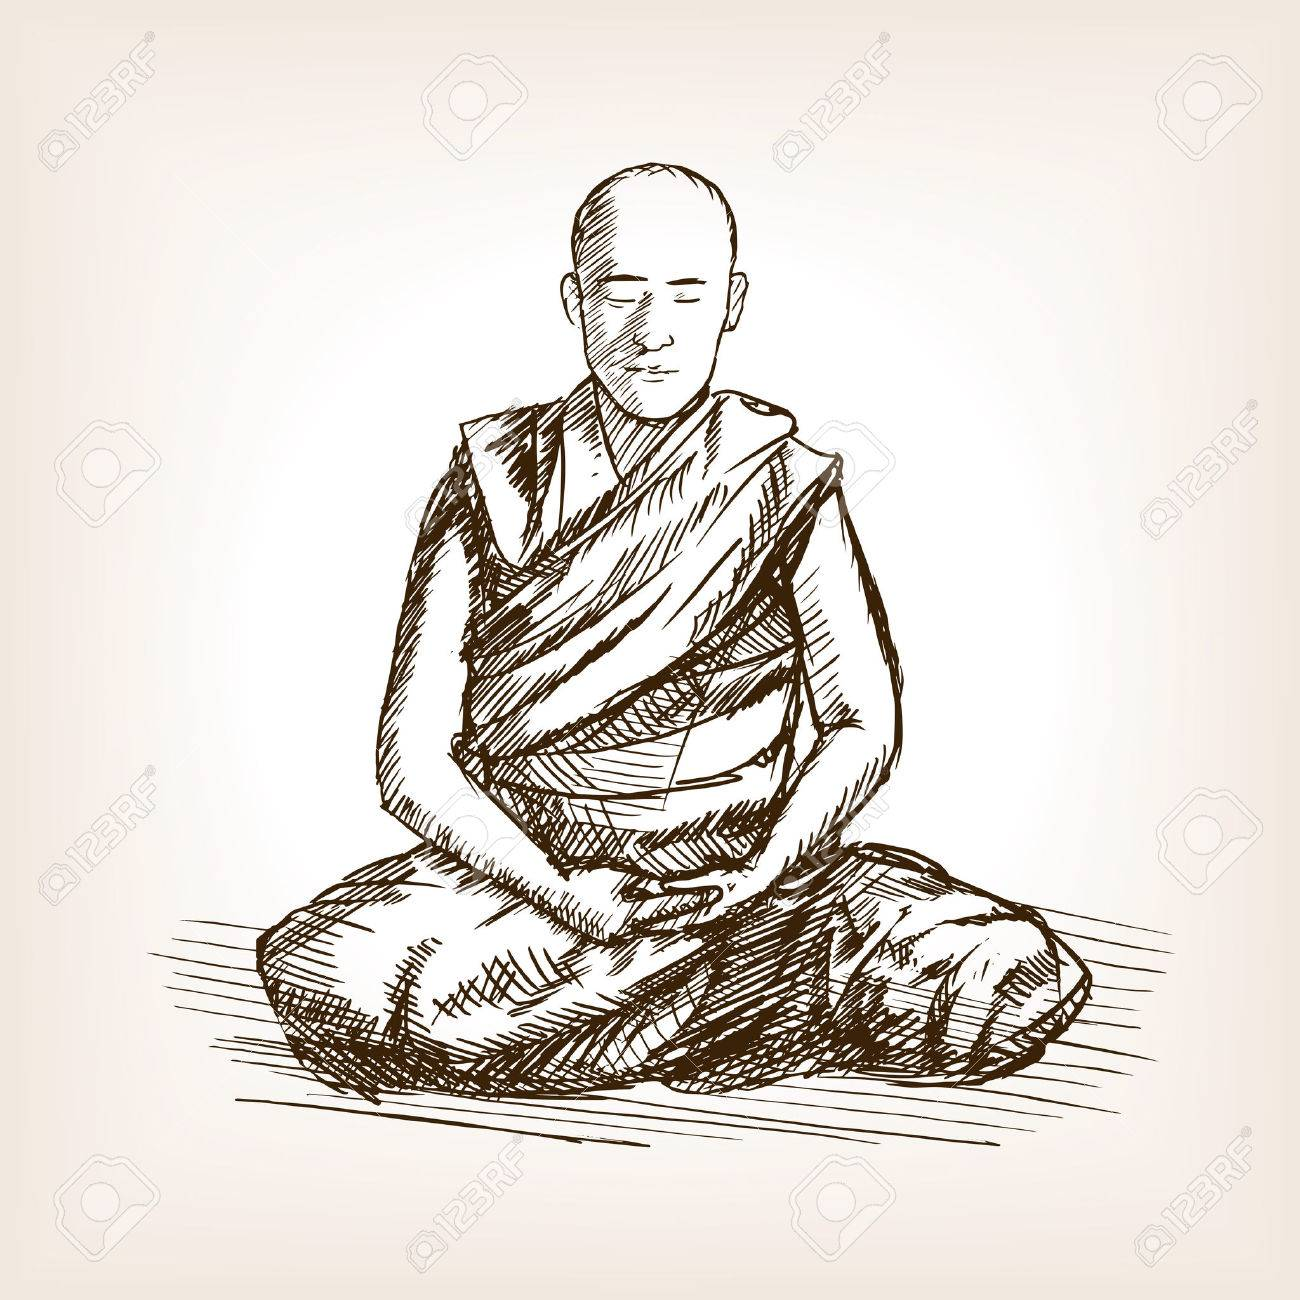 1300x1300 Buddhist Monk Meditation Sketch Style Vector Illustration. Old